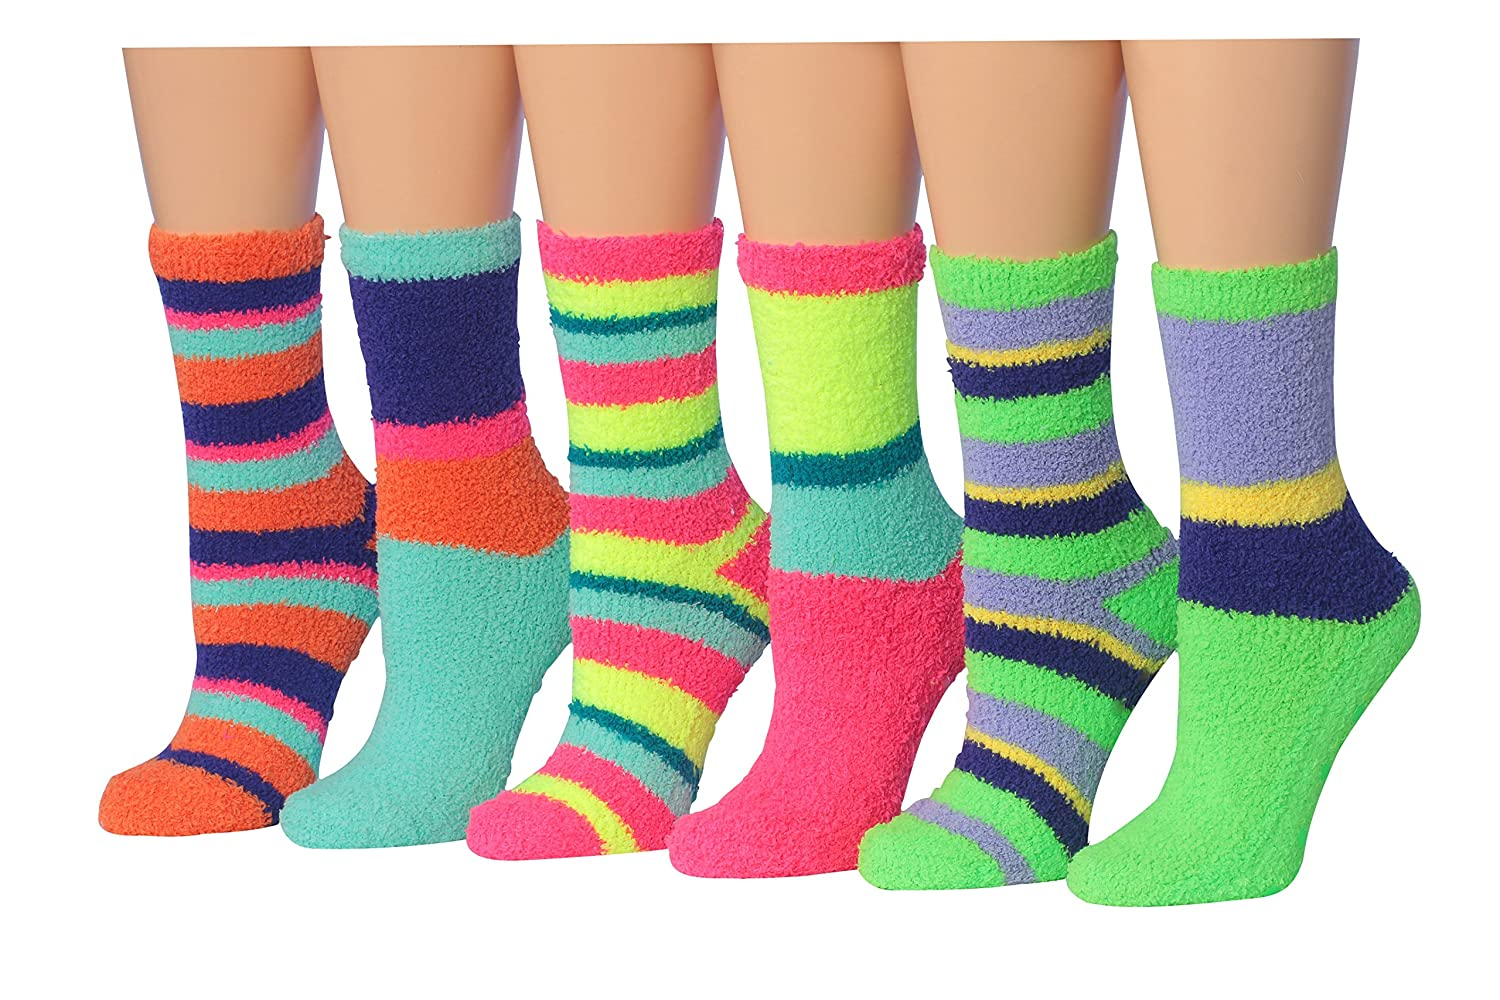 Tipi Toe Women's 6-Pairs Patterned & Solid Anti-Skid Soft Fuzzy Crew Socks FZ14-6